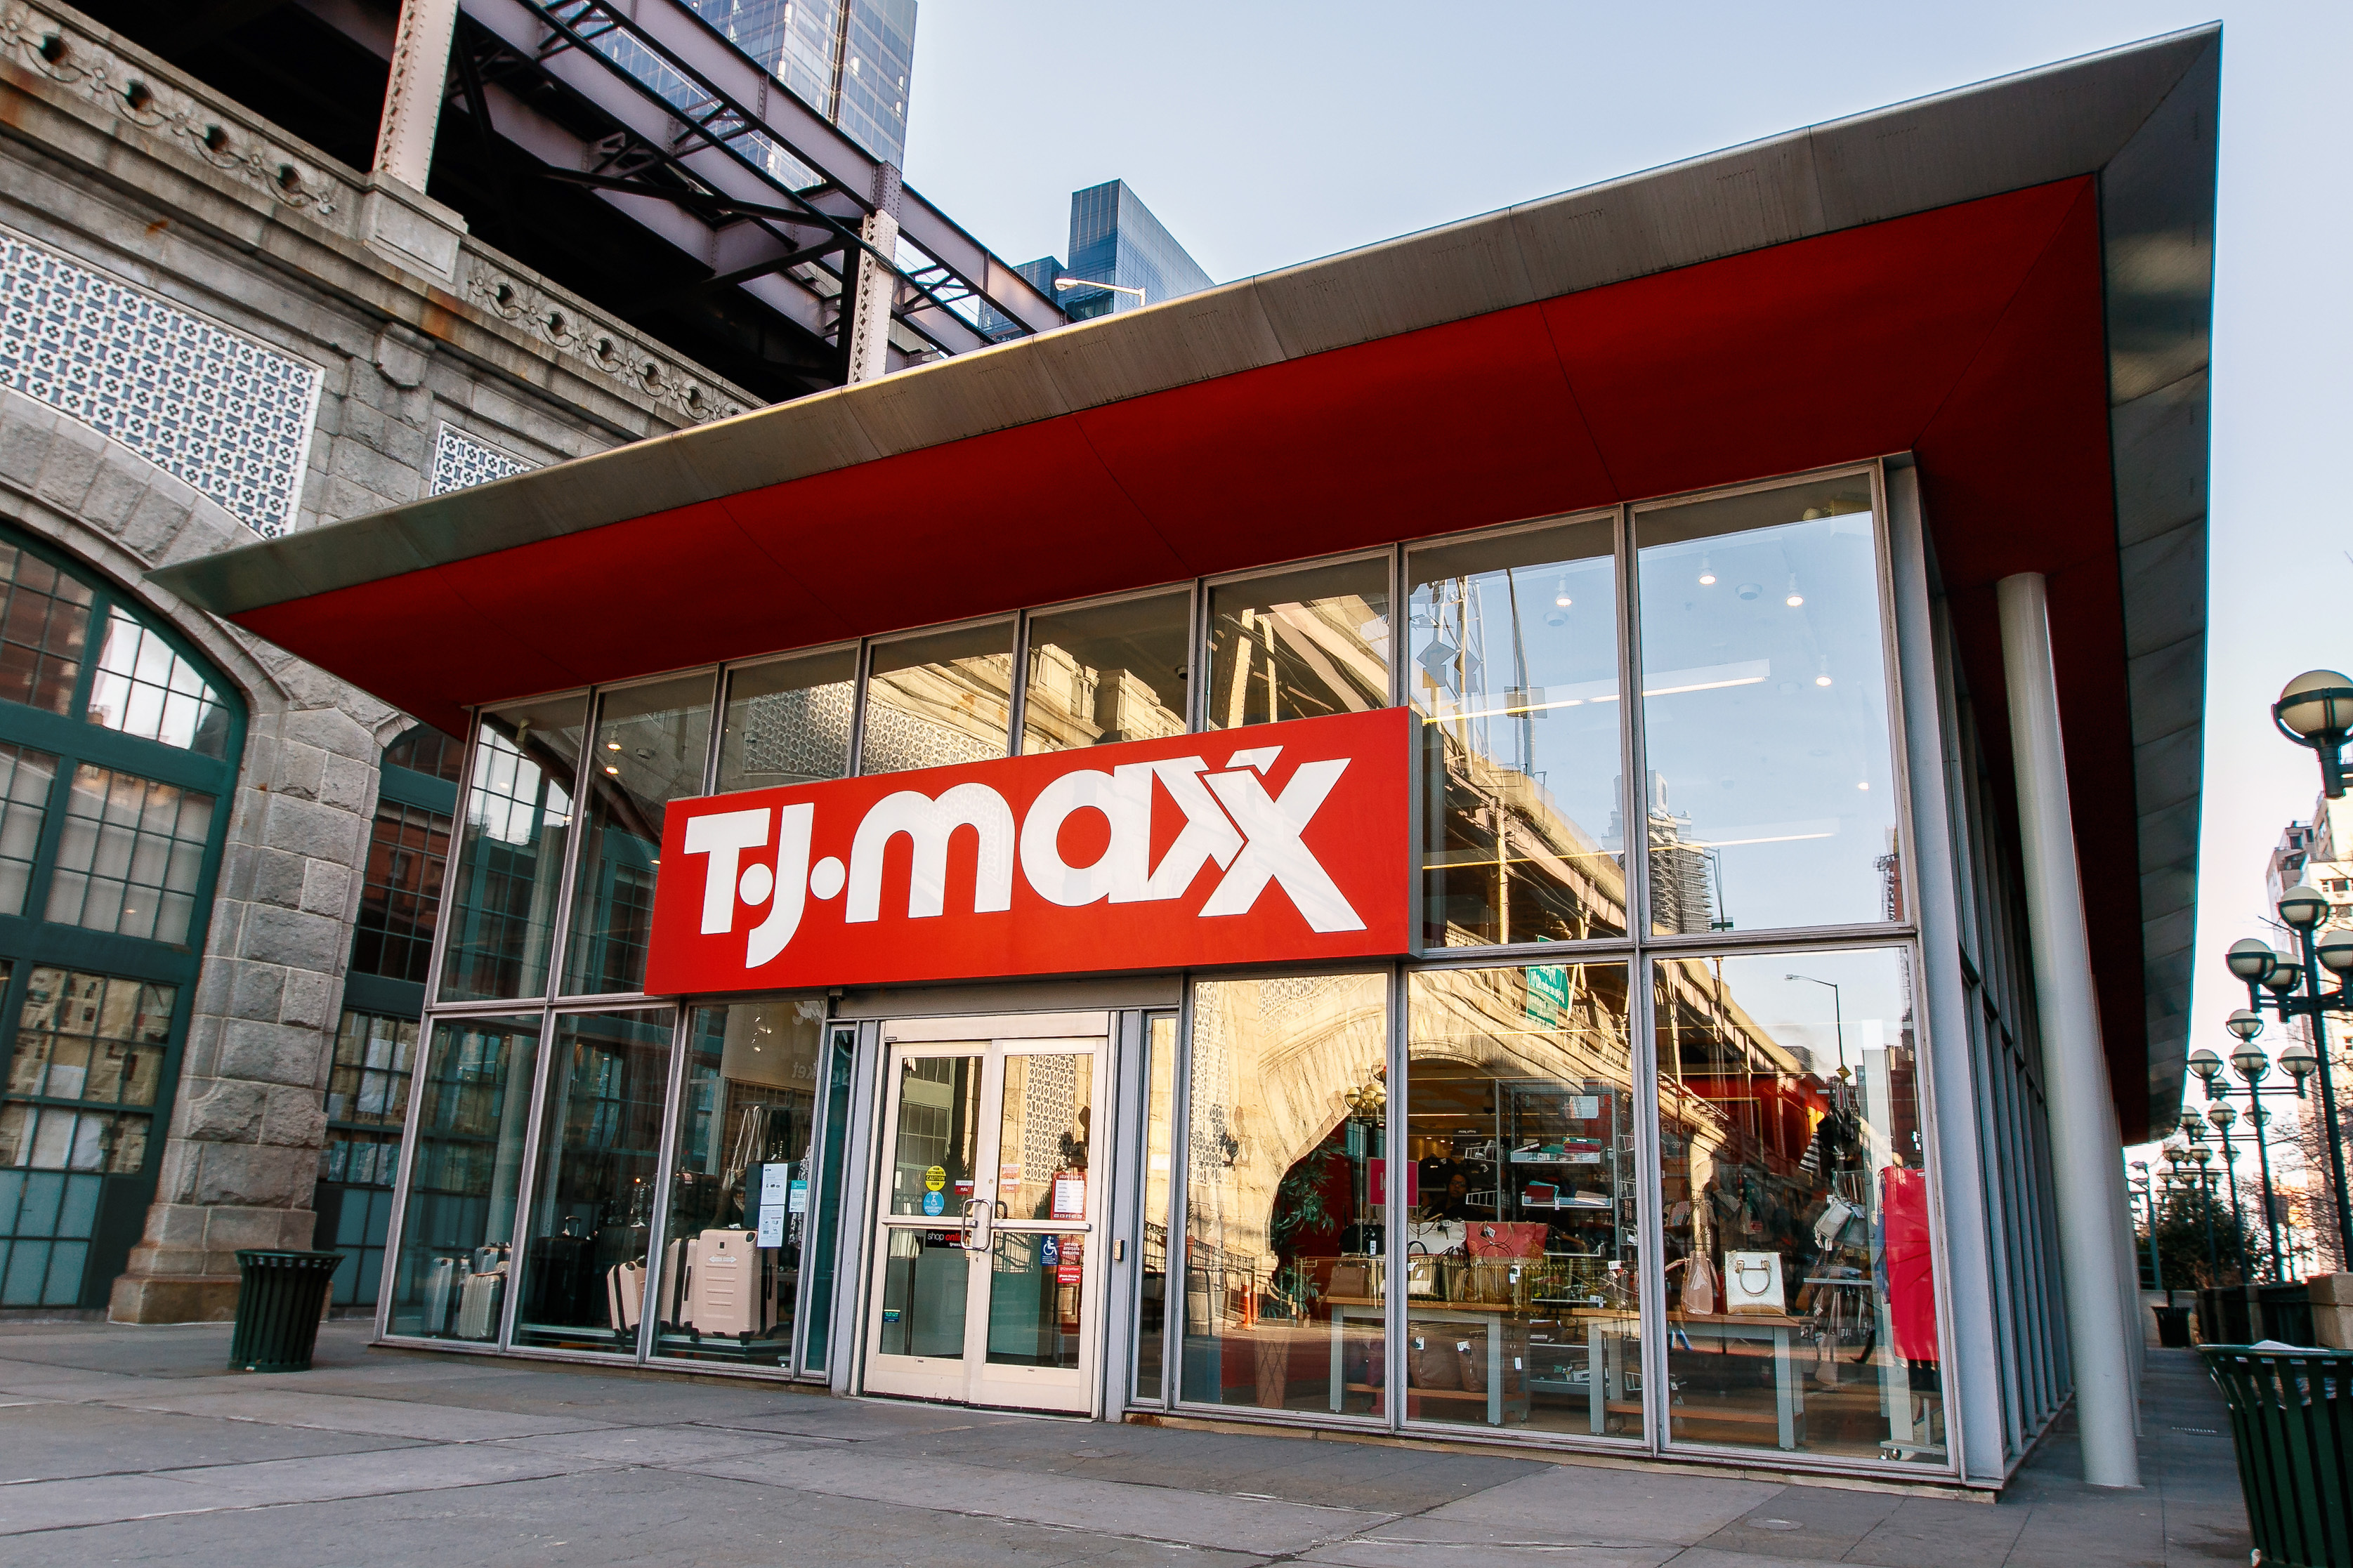 c0df76bacc The Onion Perfectly Captures What It Feels Like to Shop at T.J. Maxx |  Apartment Therapy